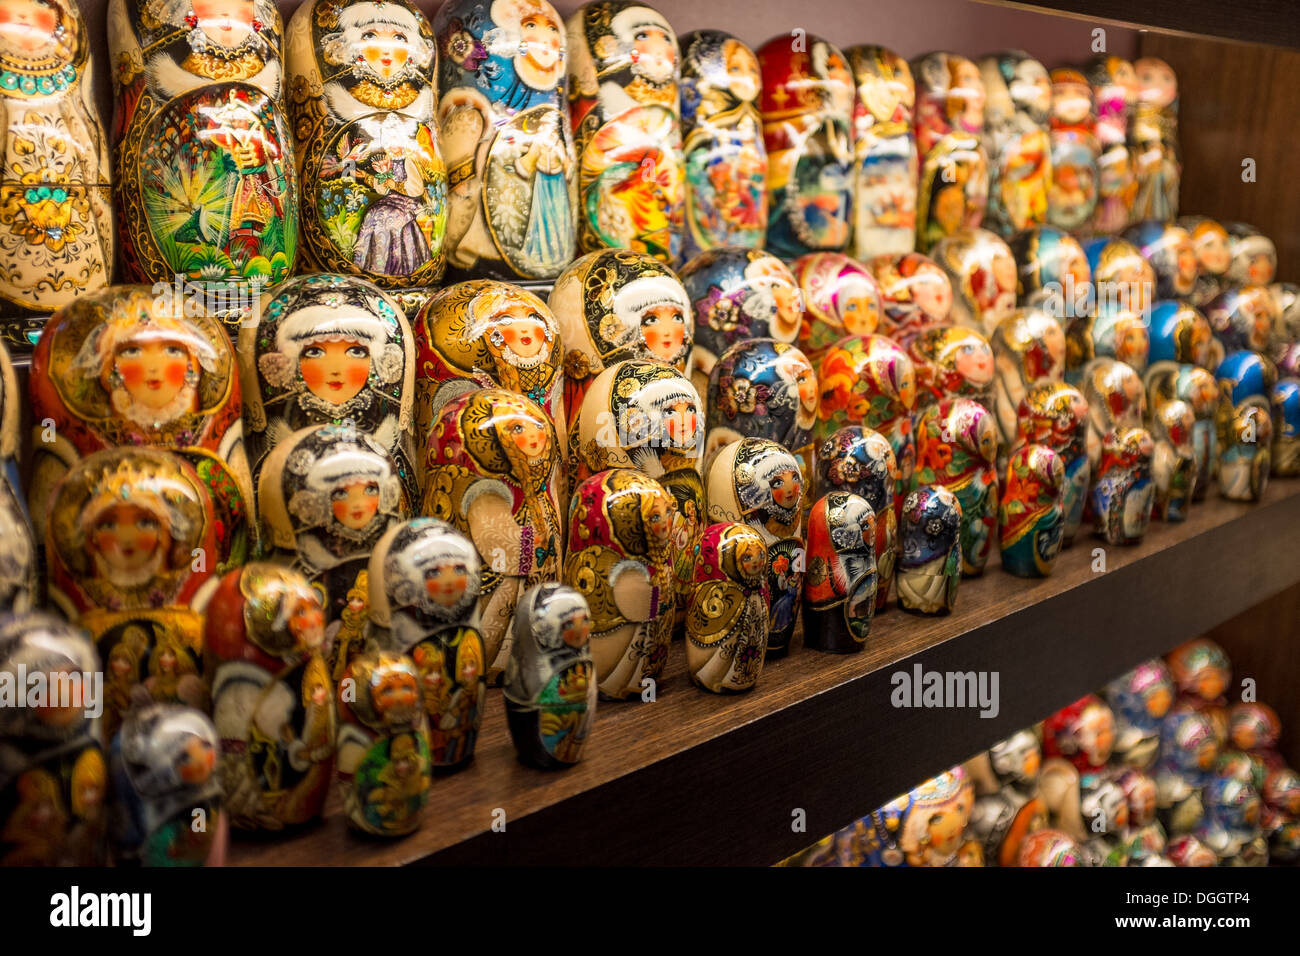 Russian matryoshka dolls on sale in a shop in St Petersburg - Stock Image a5a01311460d